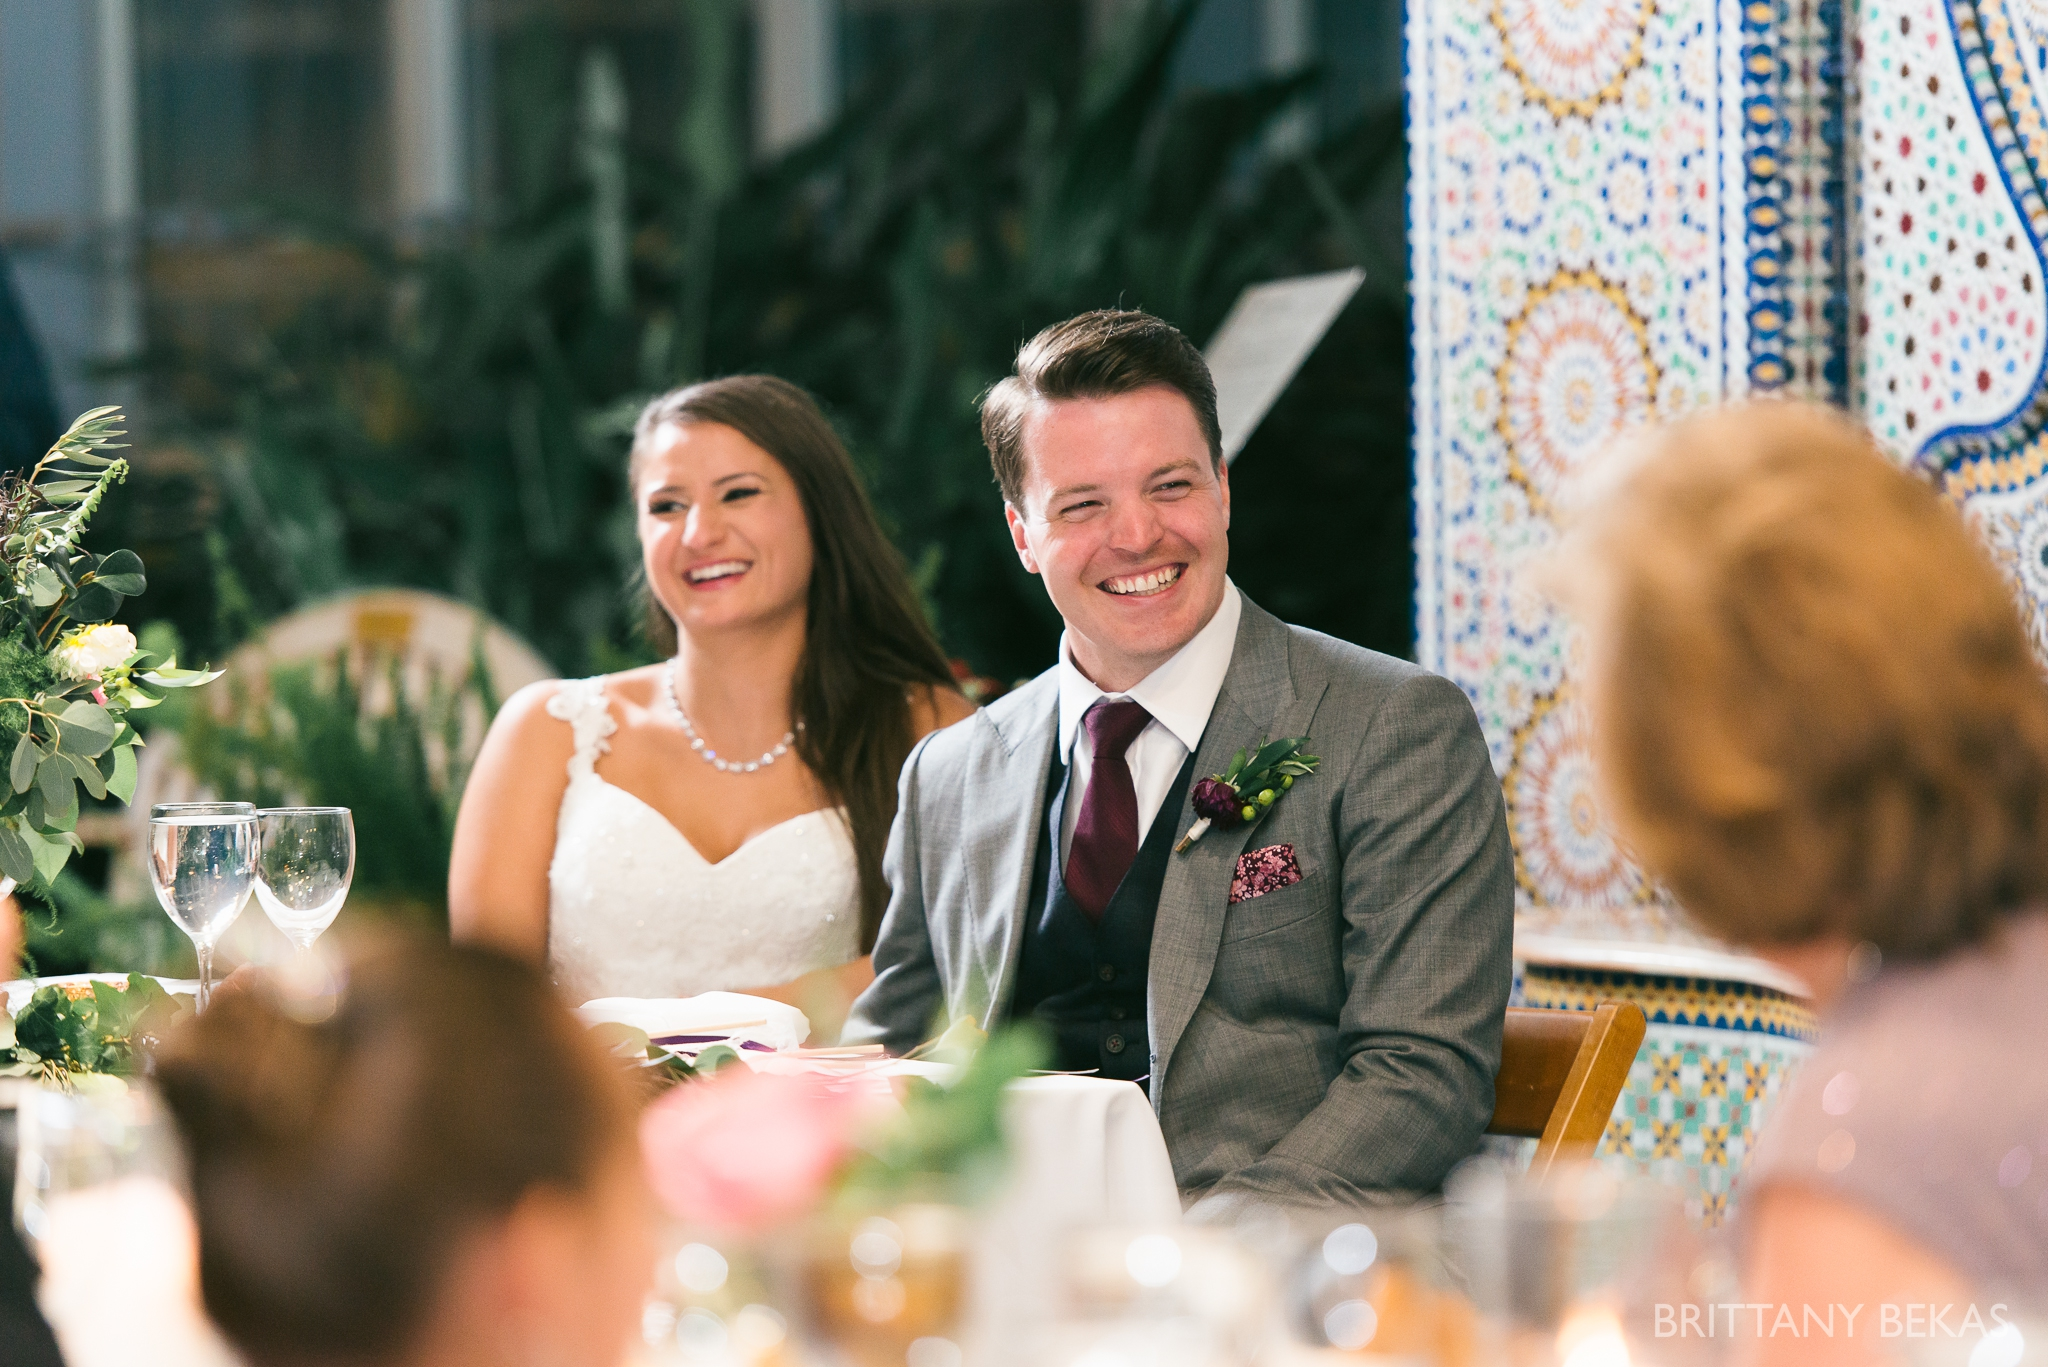 Chicago Wedding Garfield Park Conservatory Wedding Photos - Brittany Bekas Photography_0059